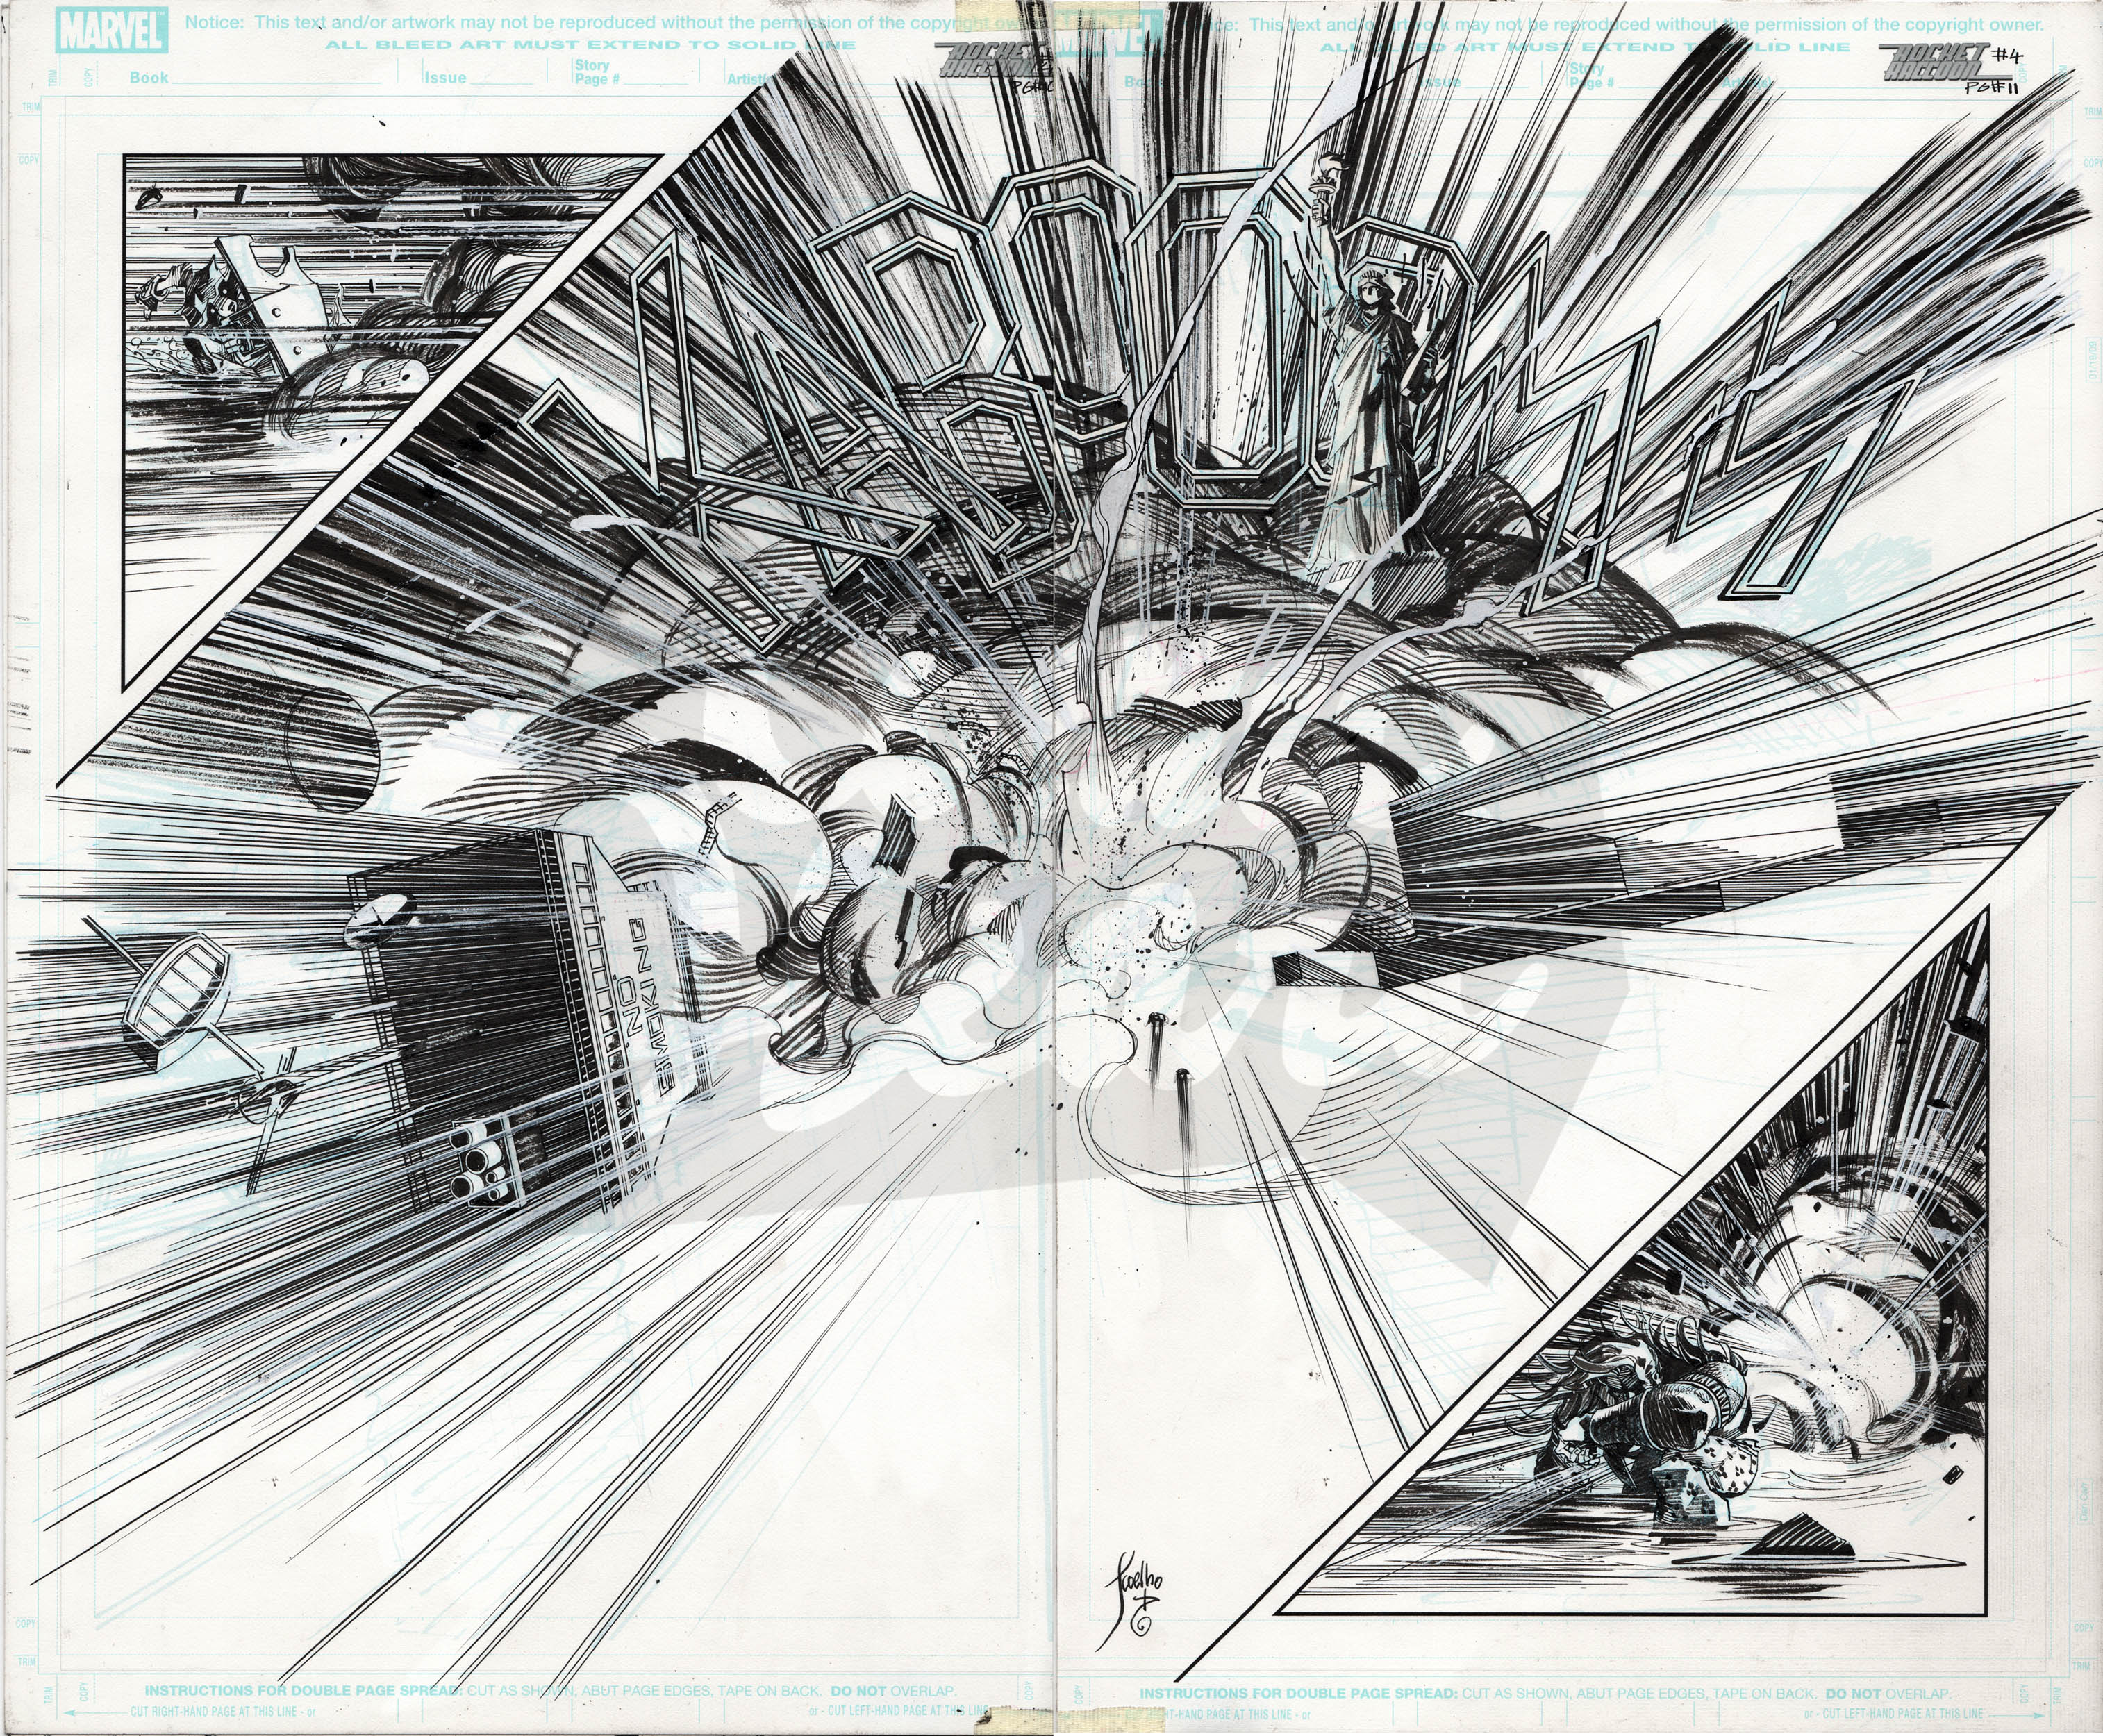 Rocket Raccoon #4, Pages 10-11 (double page spread)